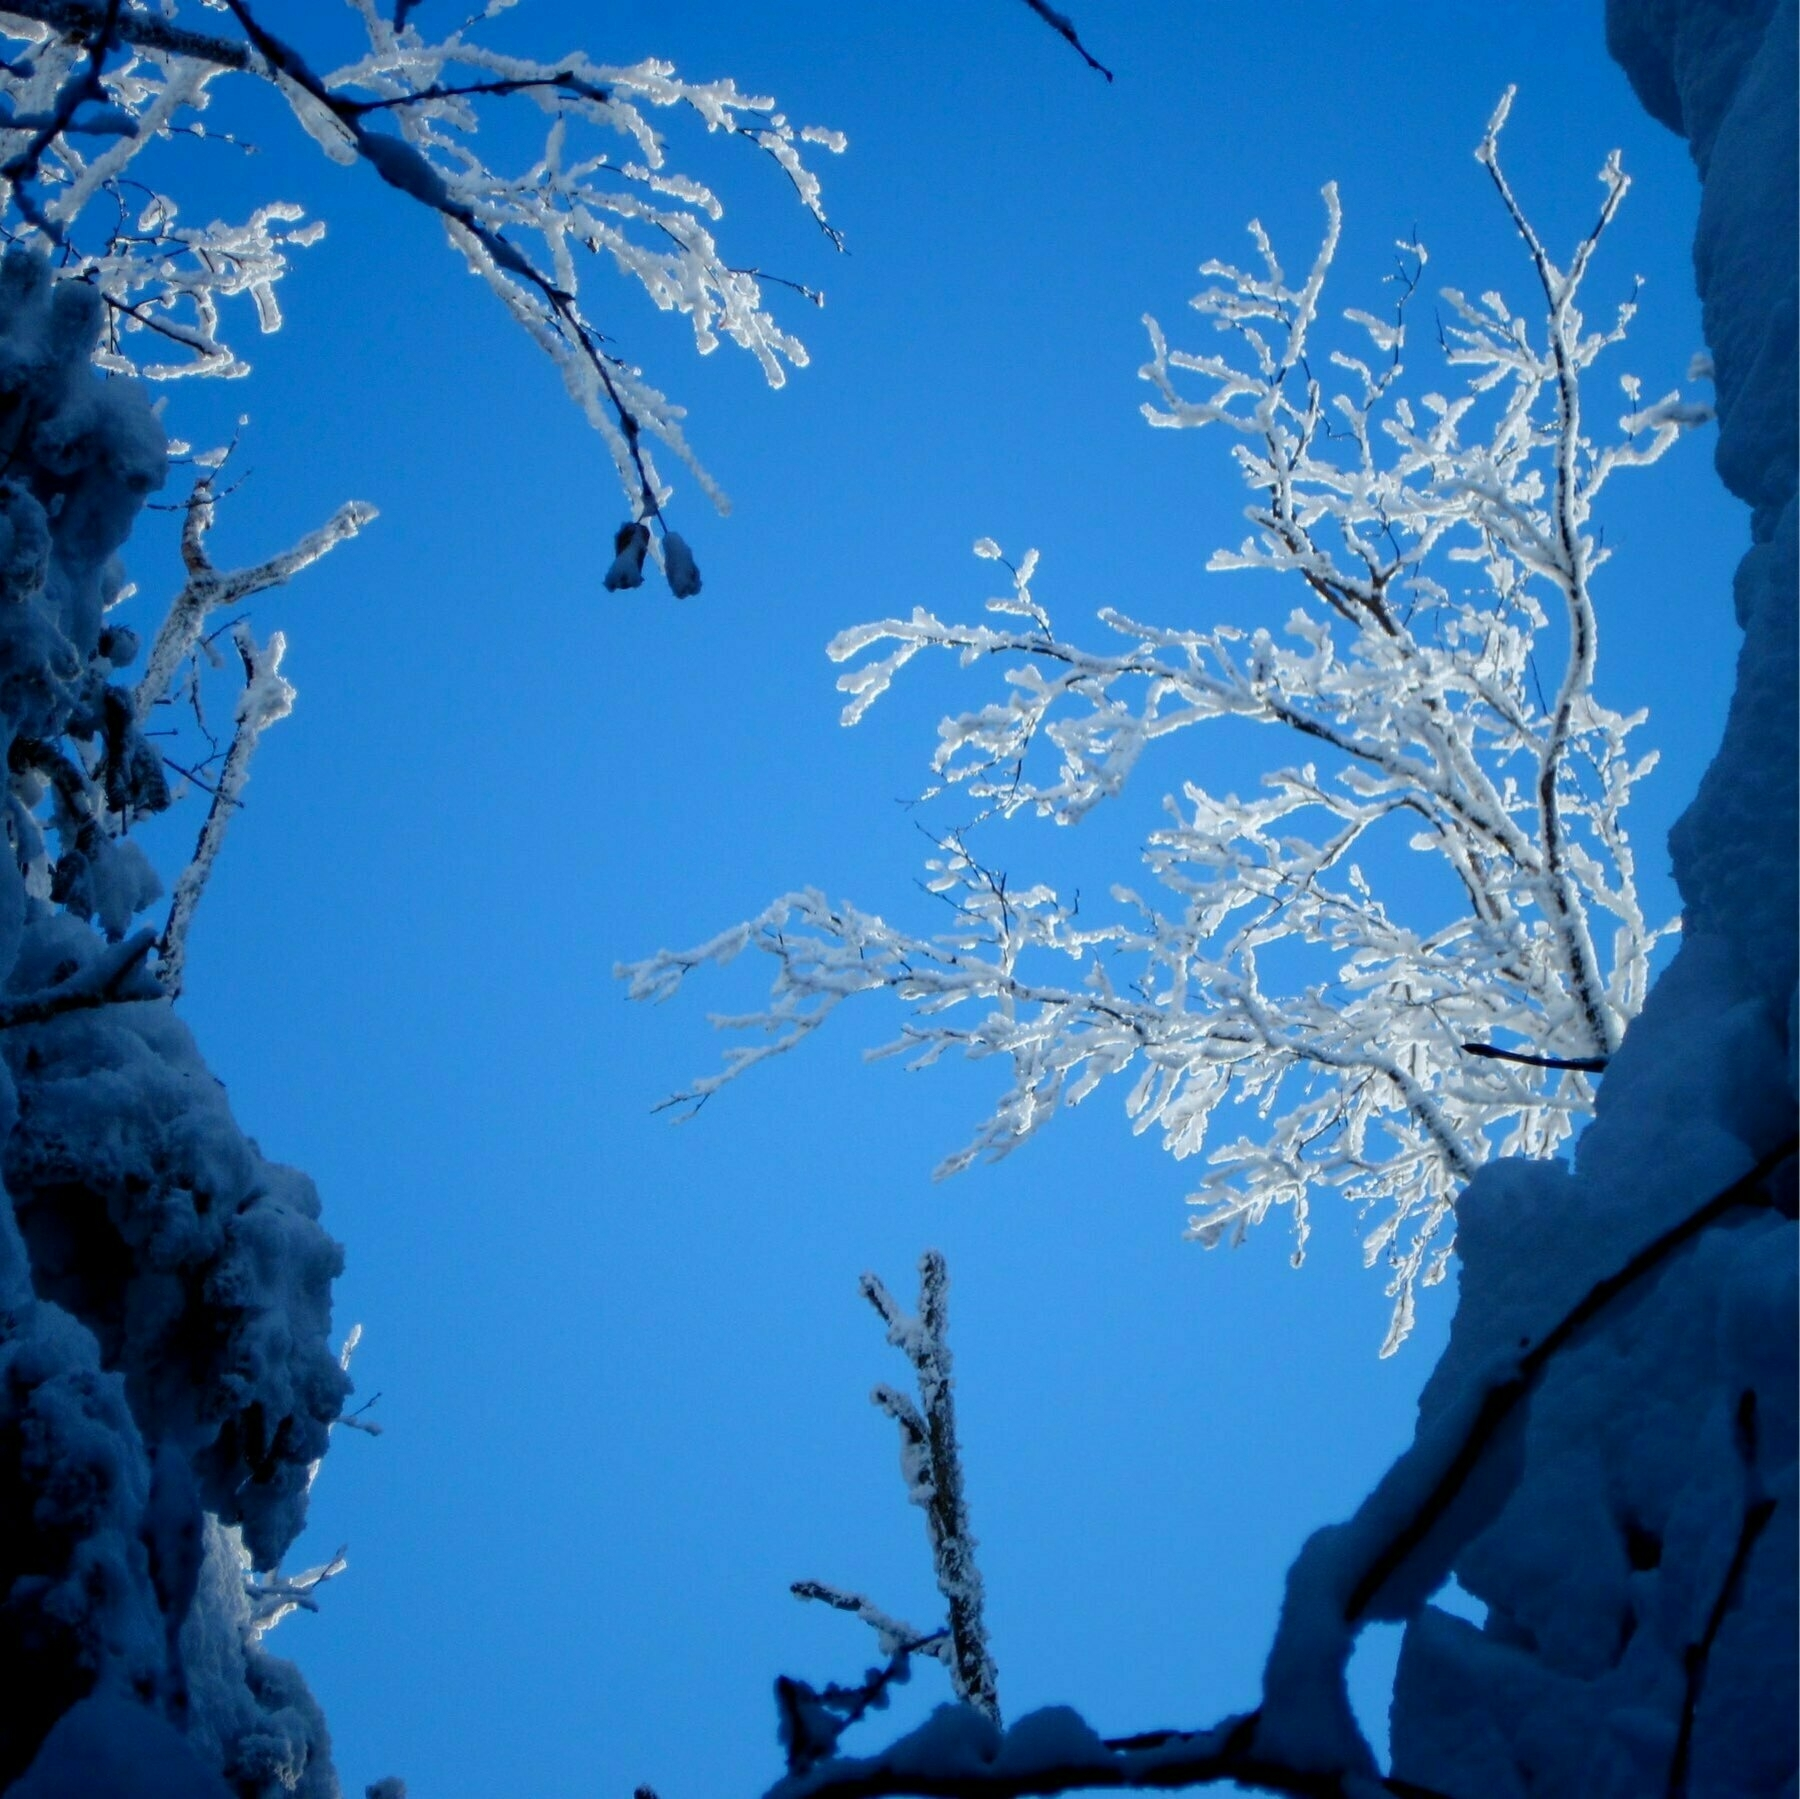 upward view of snow covered branches